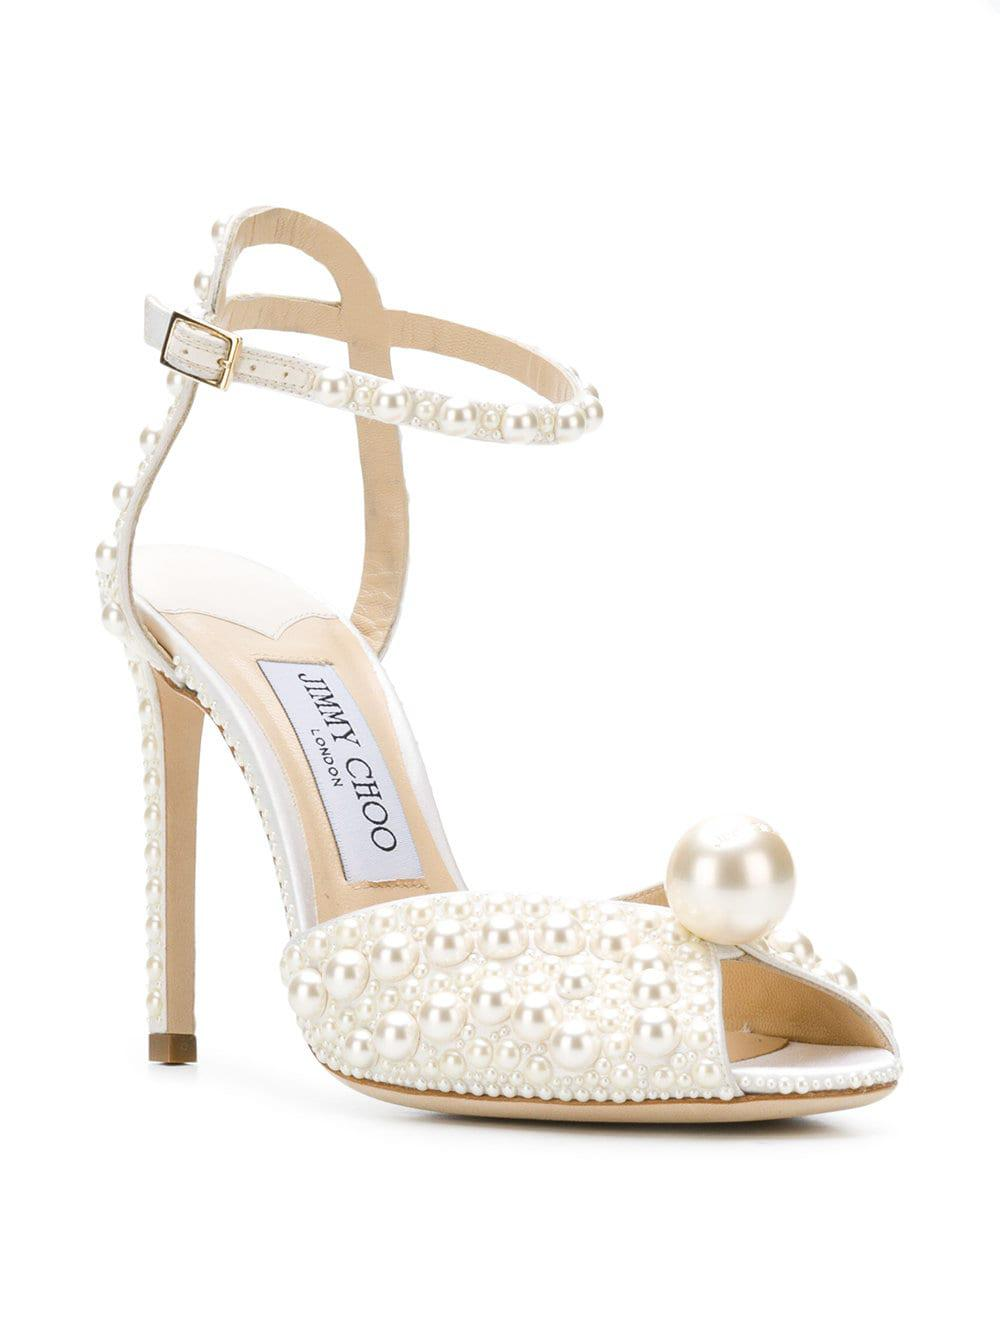 Sacora Over White Sandals 100 Choo Satin Jimmy Pearls With All Aqc34jRL5